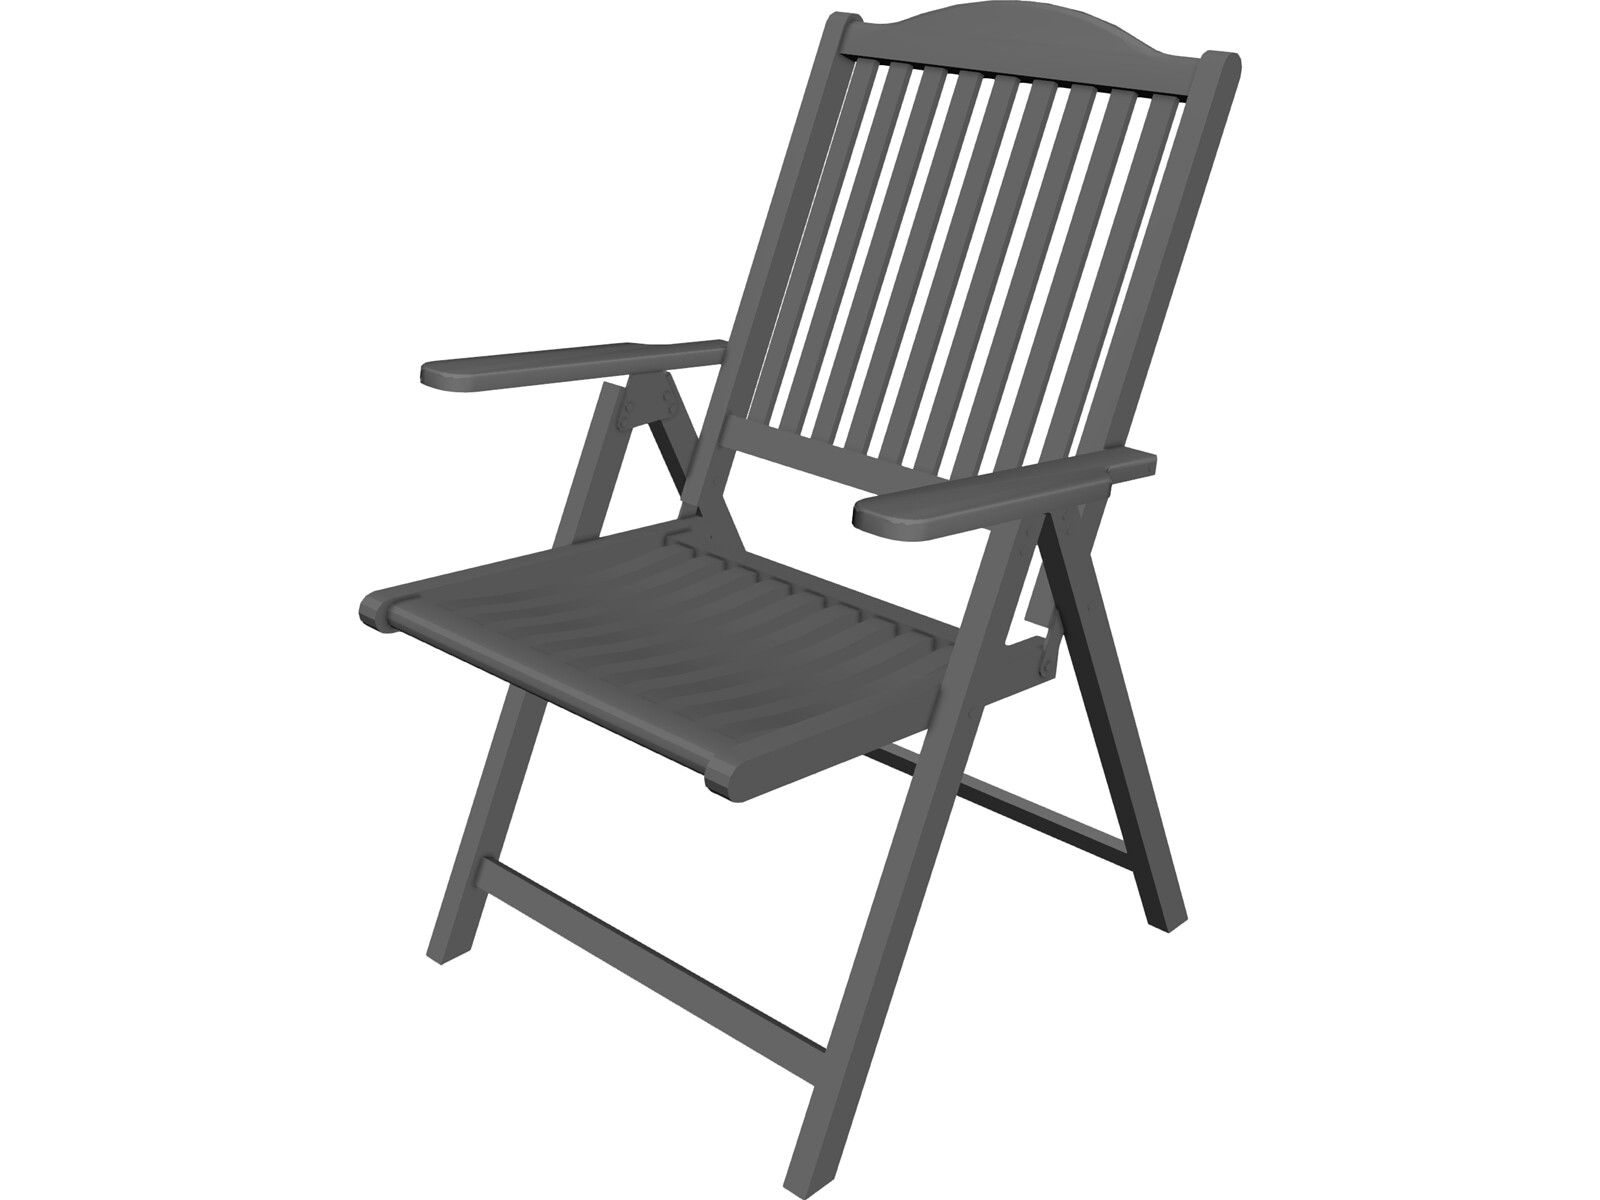 Adirondack Chair 3D CAD Model